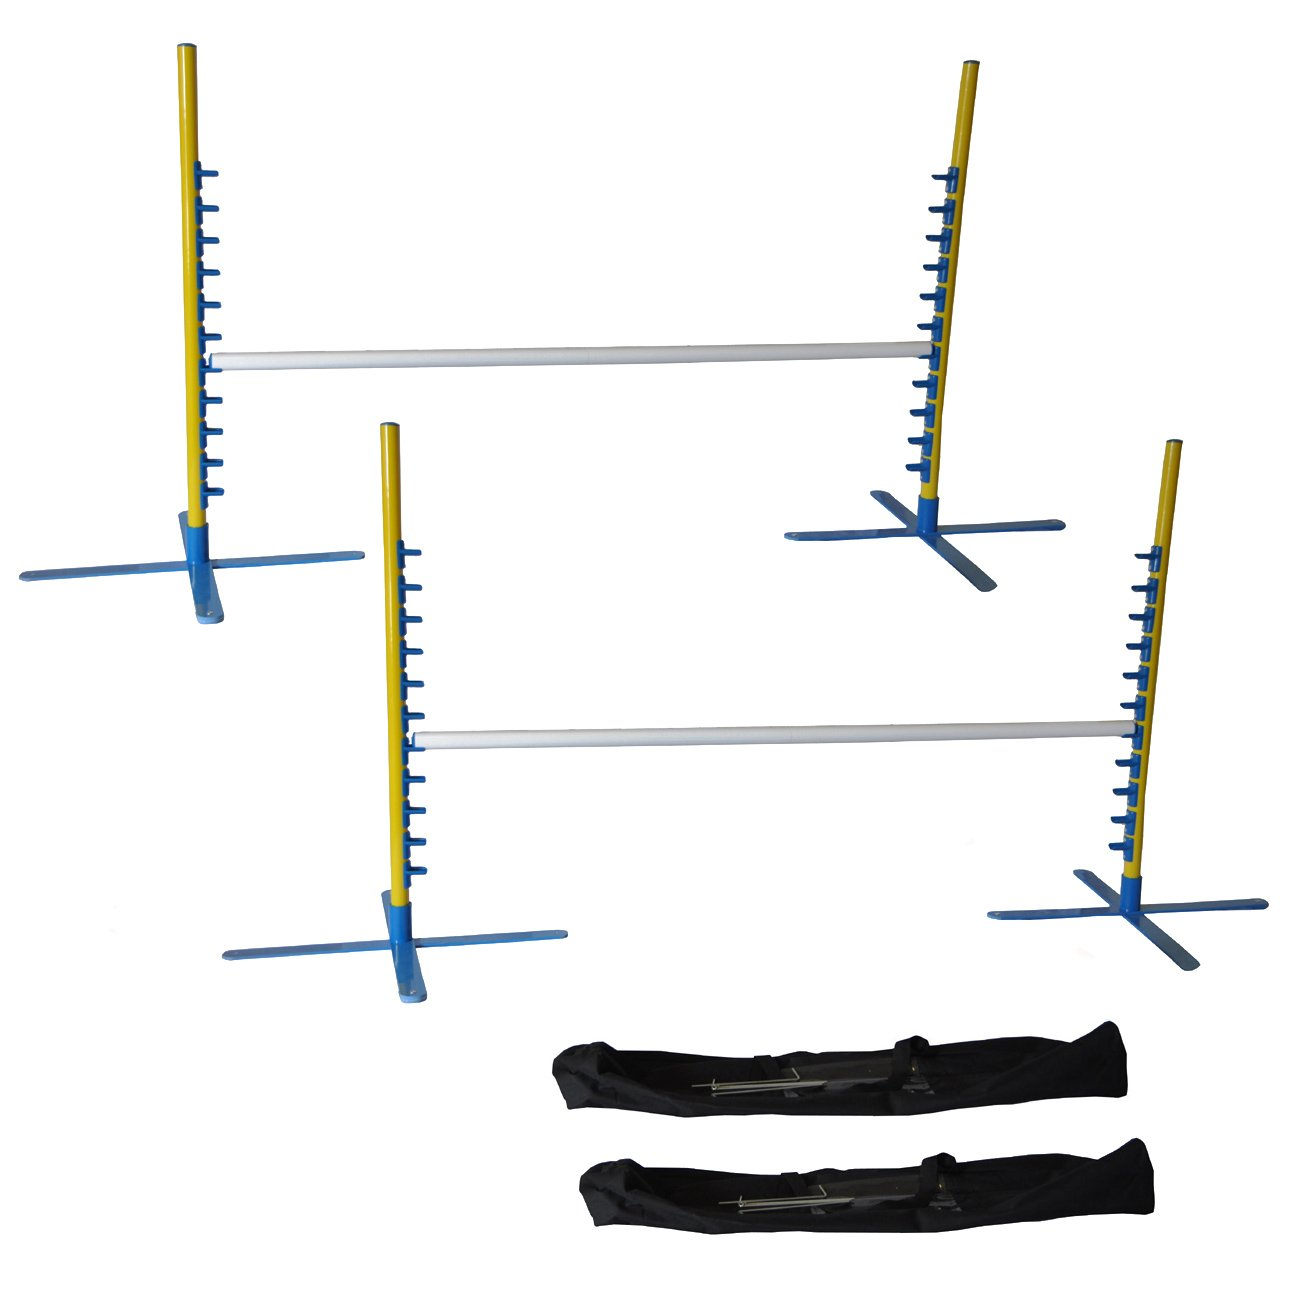 Cool Runners Set of 2, 4FT Wide Dog Agility Jumps with Carrying Case